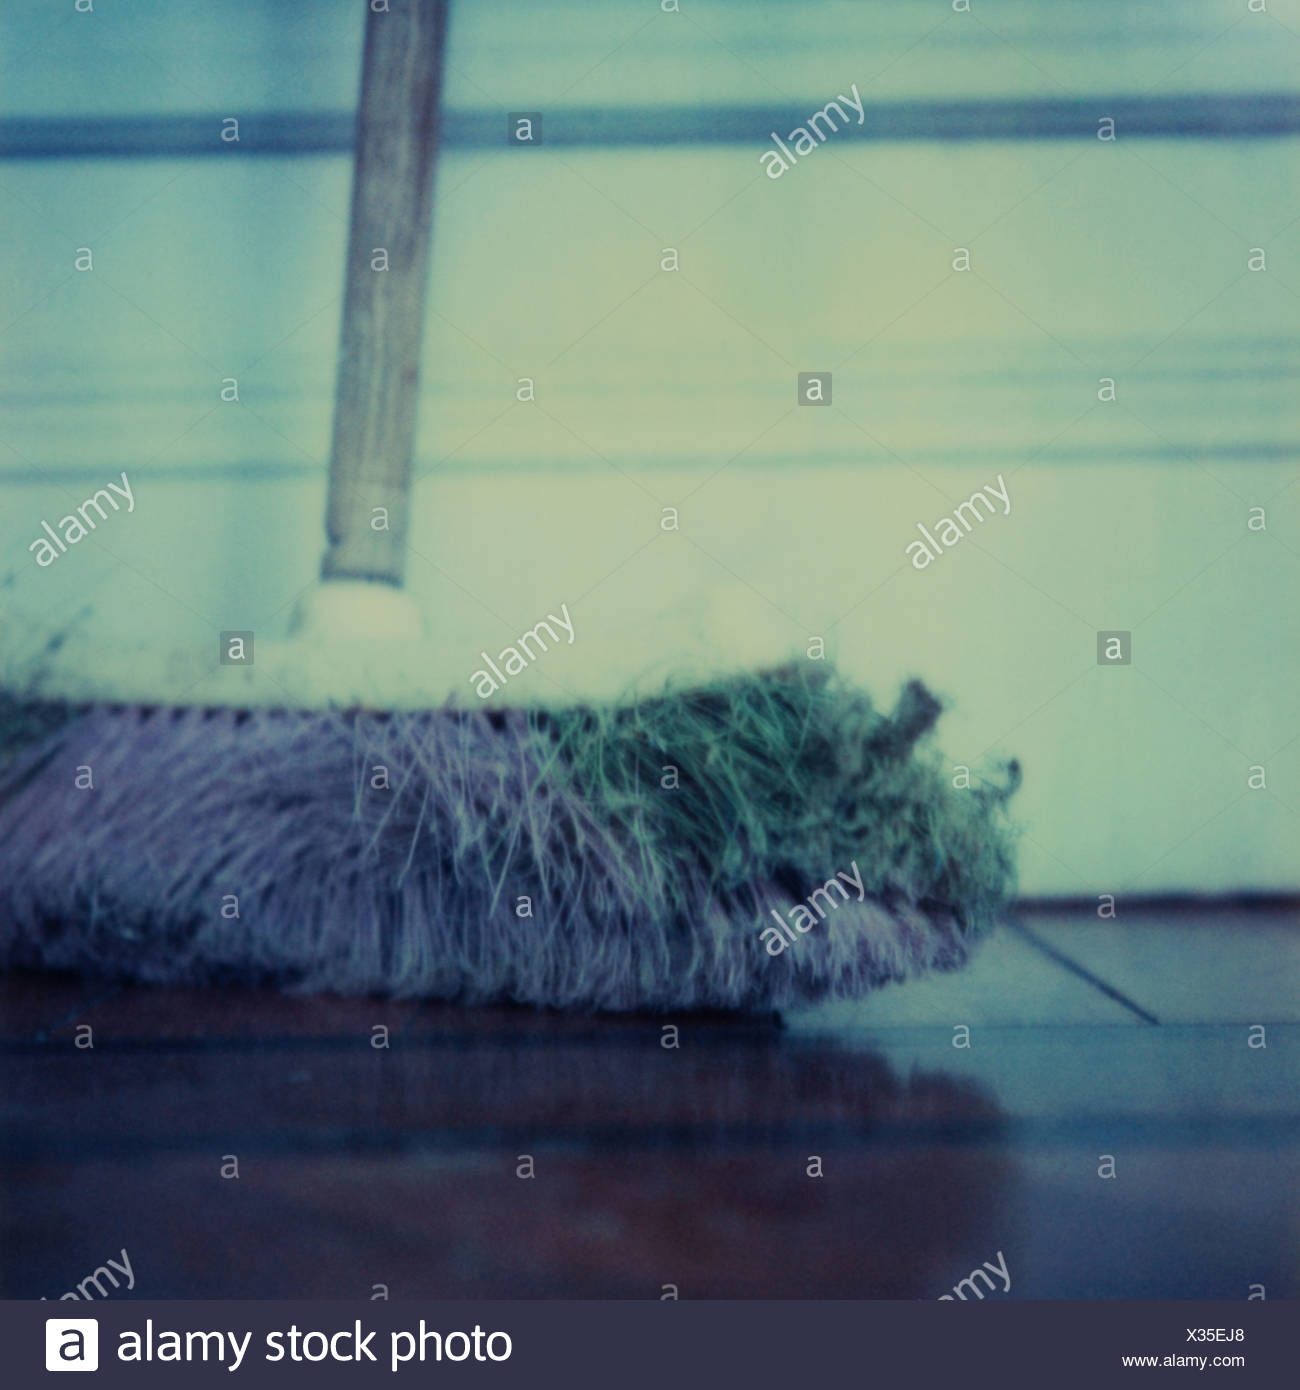 Broom, cropped view - Stock Image